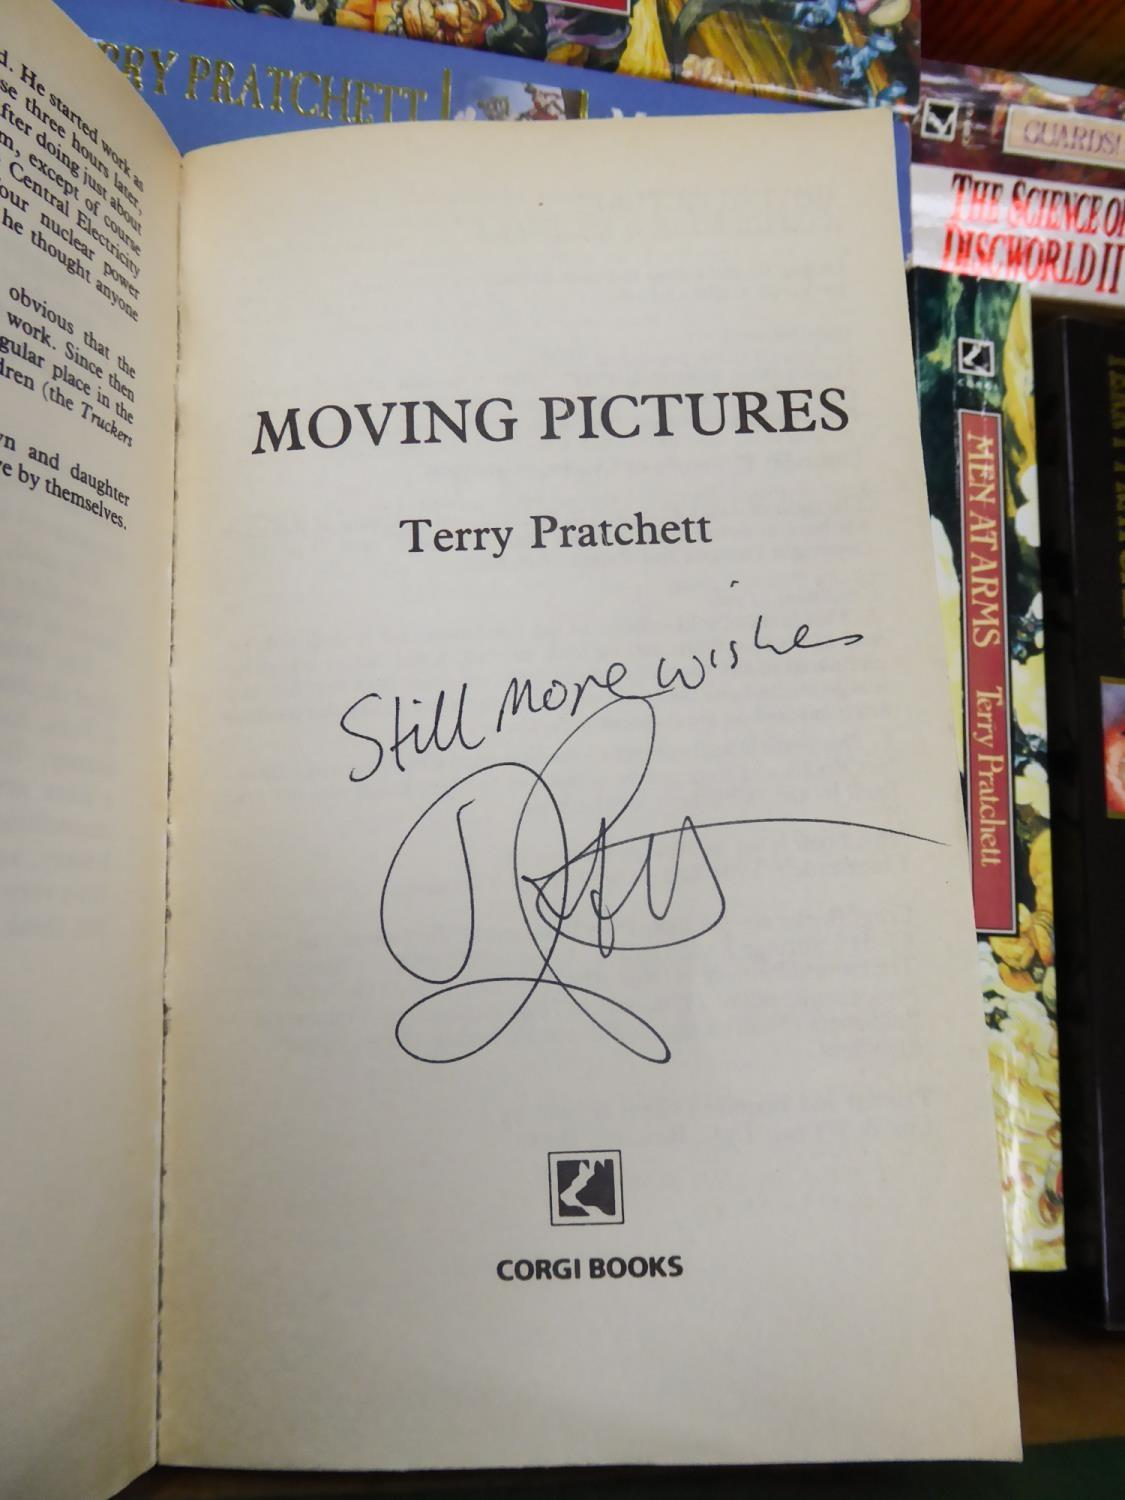 Lot 146 - Terry Pratchett- Morning Pictures, A Discworld Novel, pub by Corgi (pb) SIGNED ?Still More Wishes